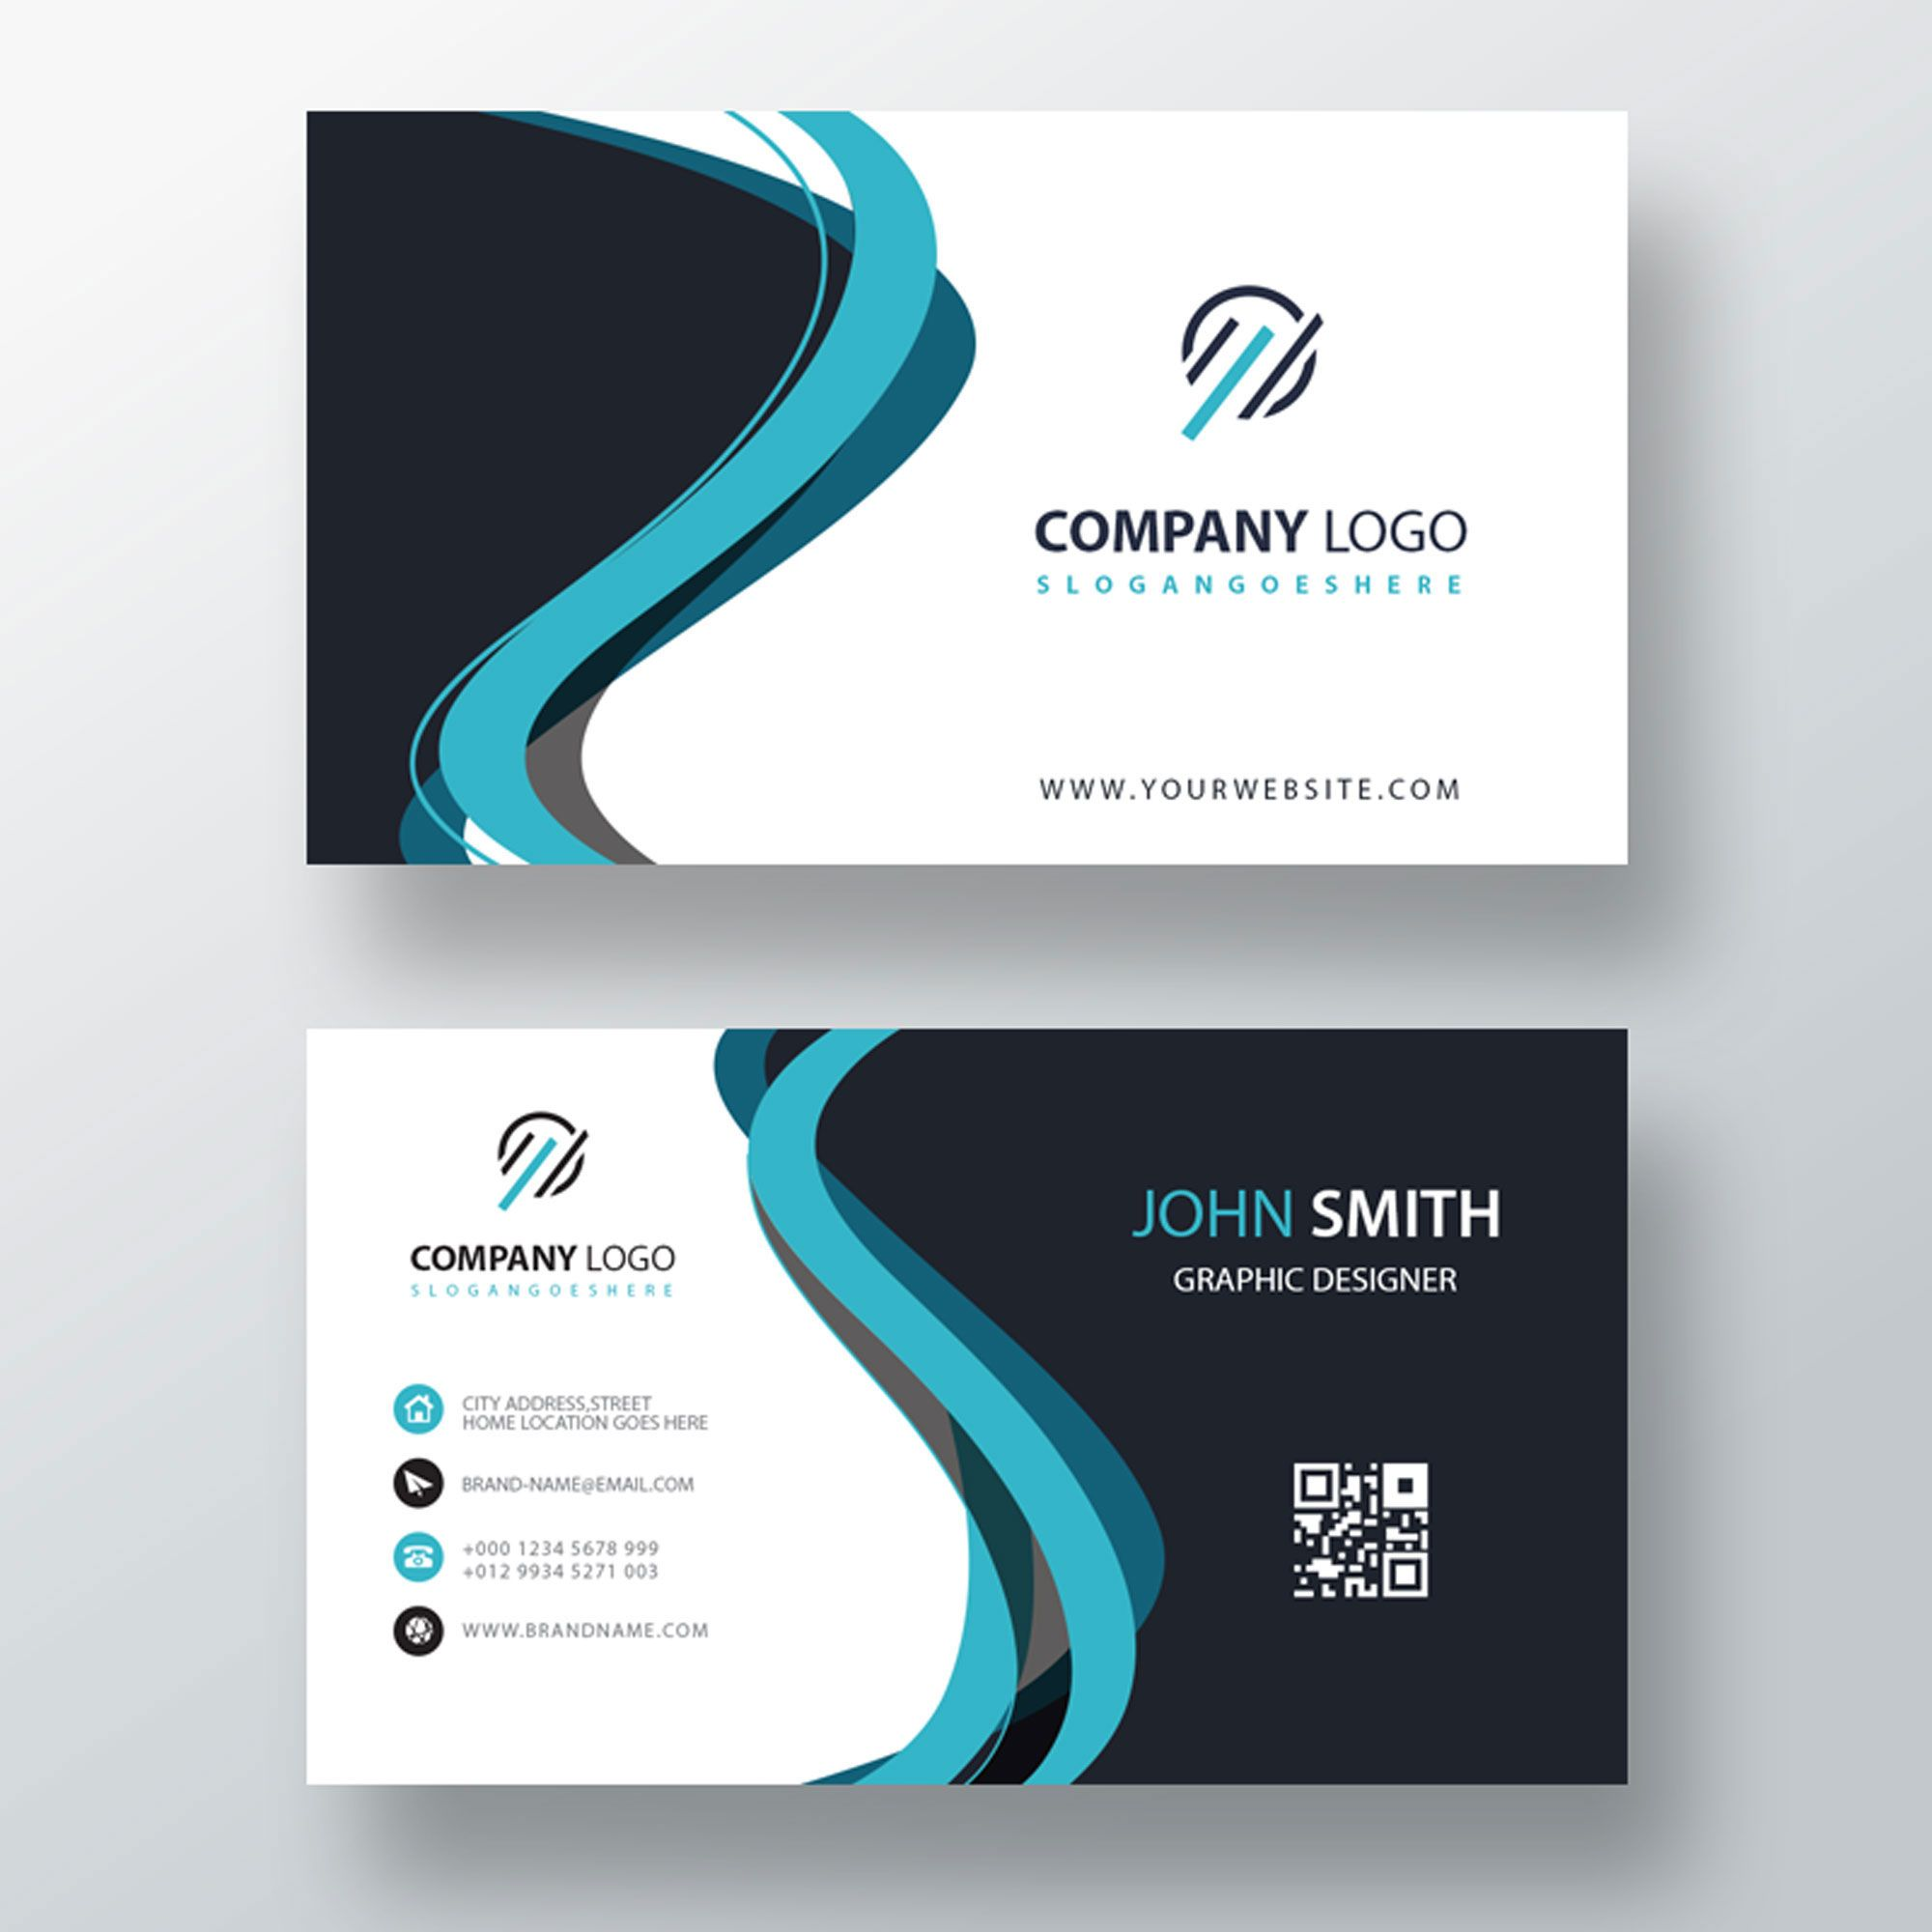 Classic Company Visiting Card Template Free Customize Inside Buisness Card Temp Shaped Business Cards Free Business Card Templates Business Card Template Psd